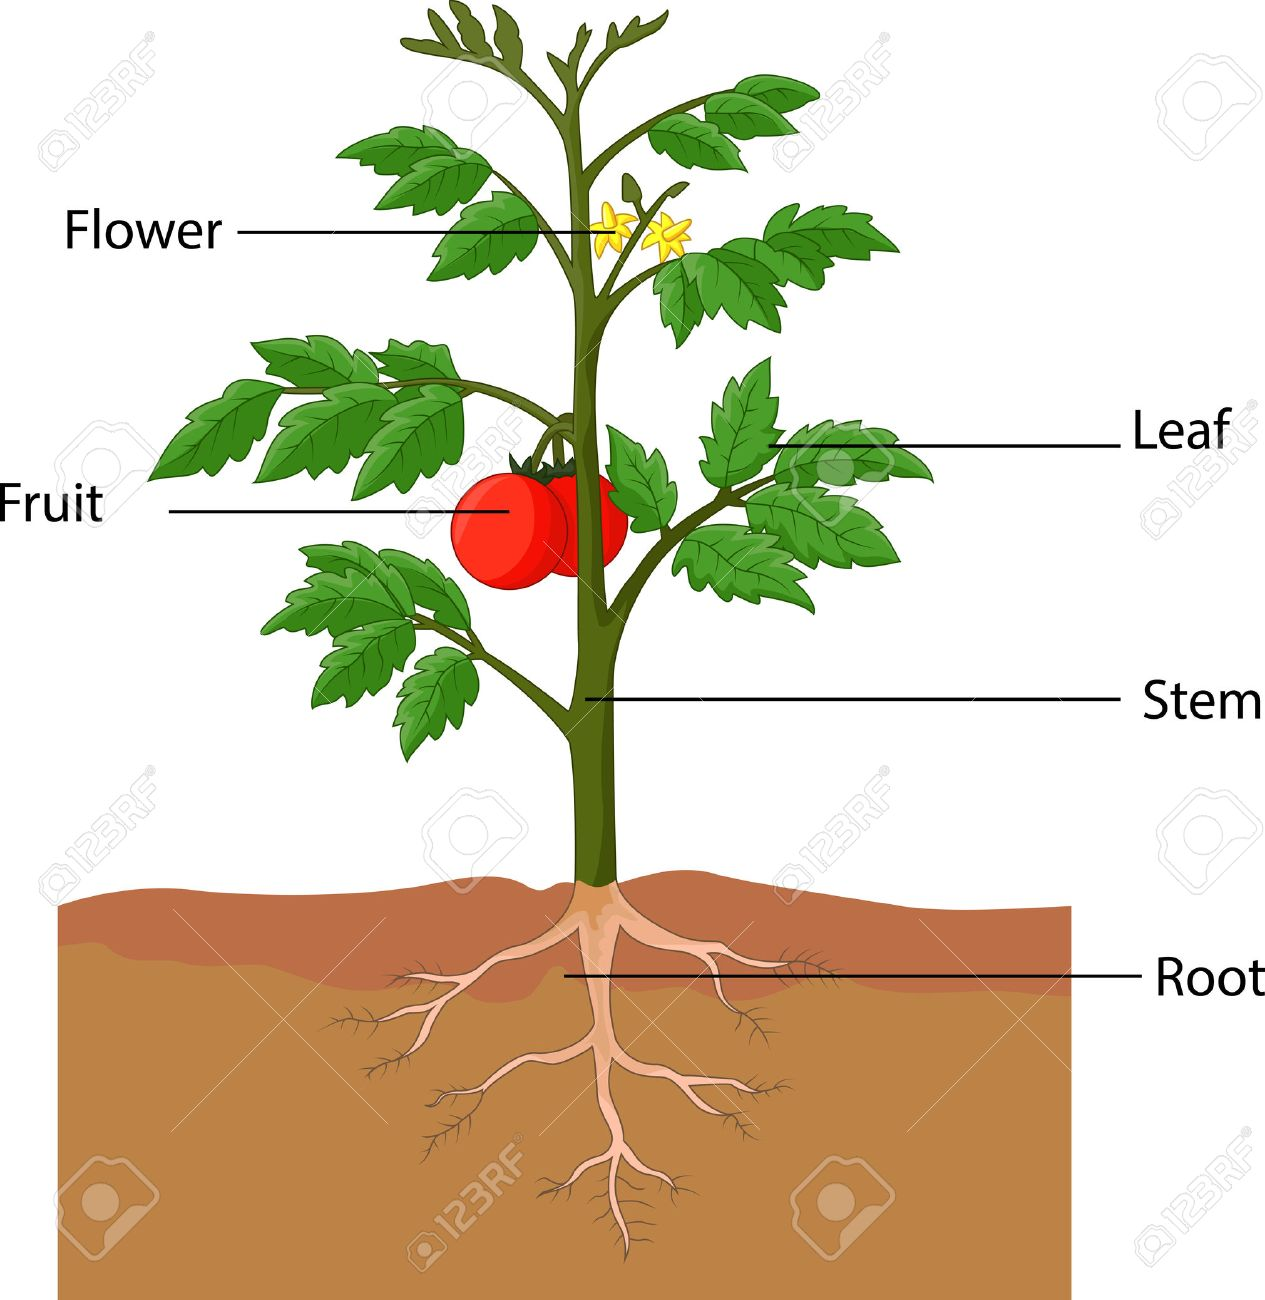 Flowering Plant Diagram Parts Of A Tomato - Anything Wiring Diagrams •